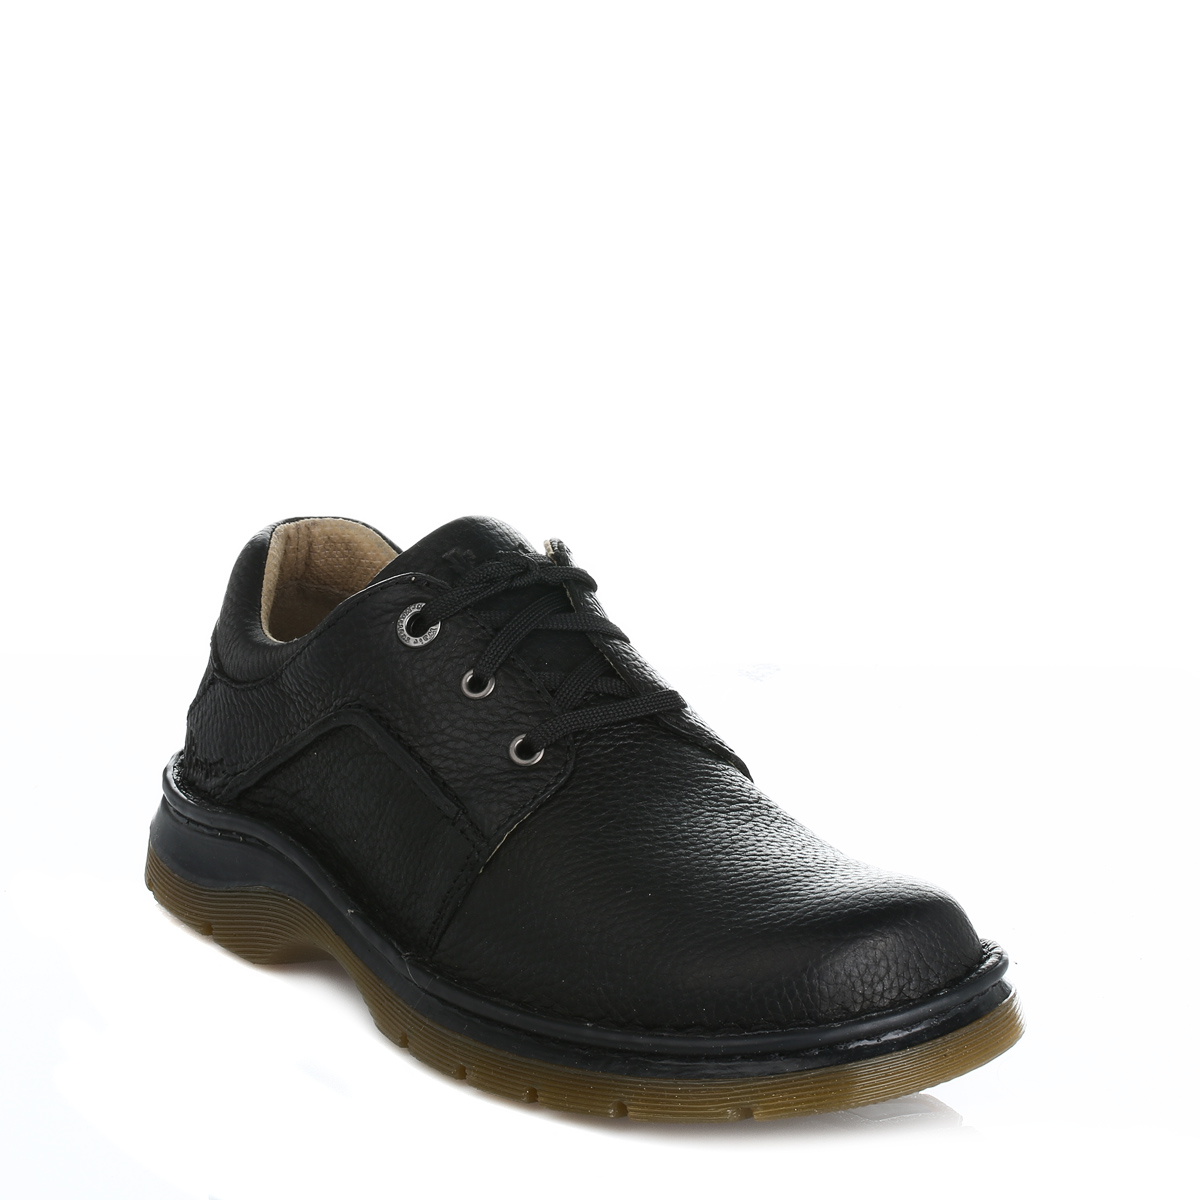 Dr. Martens Men Kids Docs Shoes Zack Gibson Black Leather ...